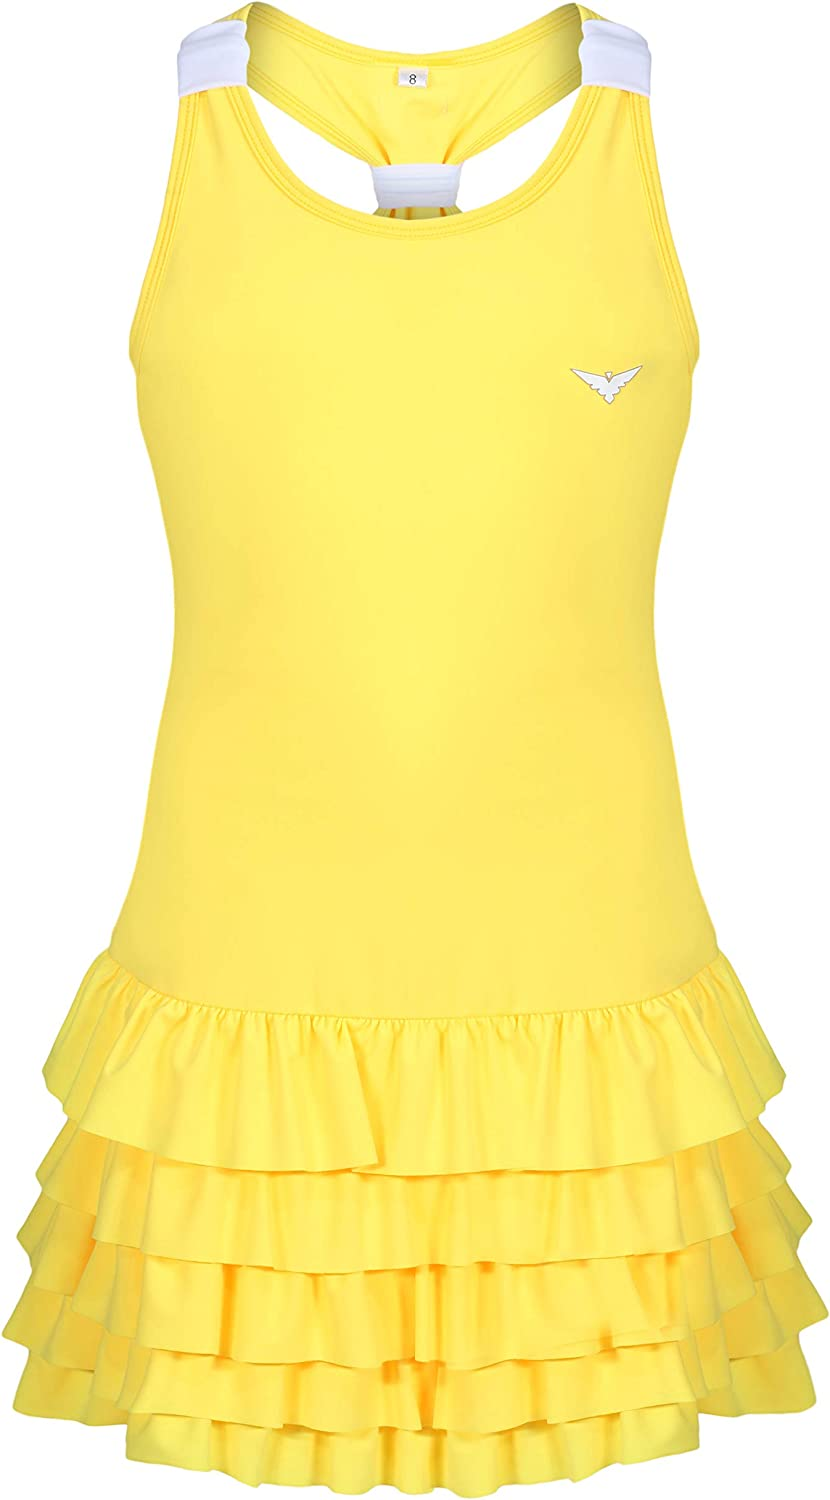 Bace Super special price Girls Tennis Los Angeles Mall Dress Frill with Golf Underpants